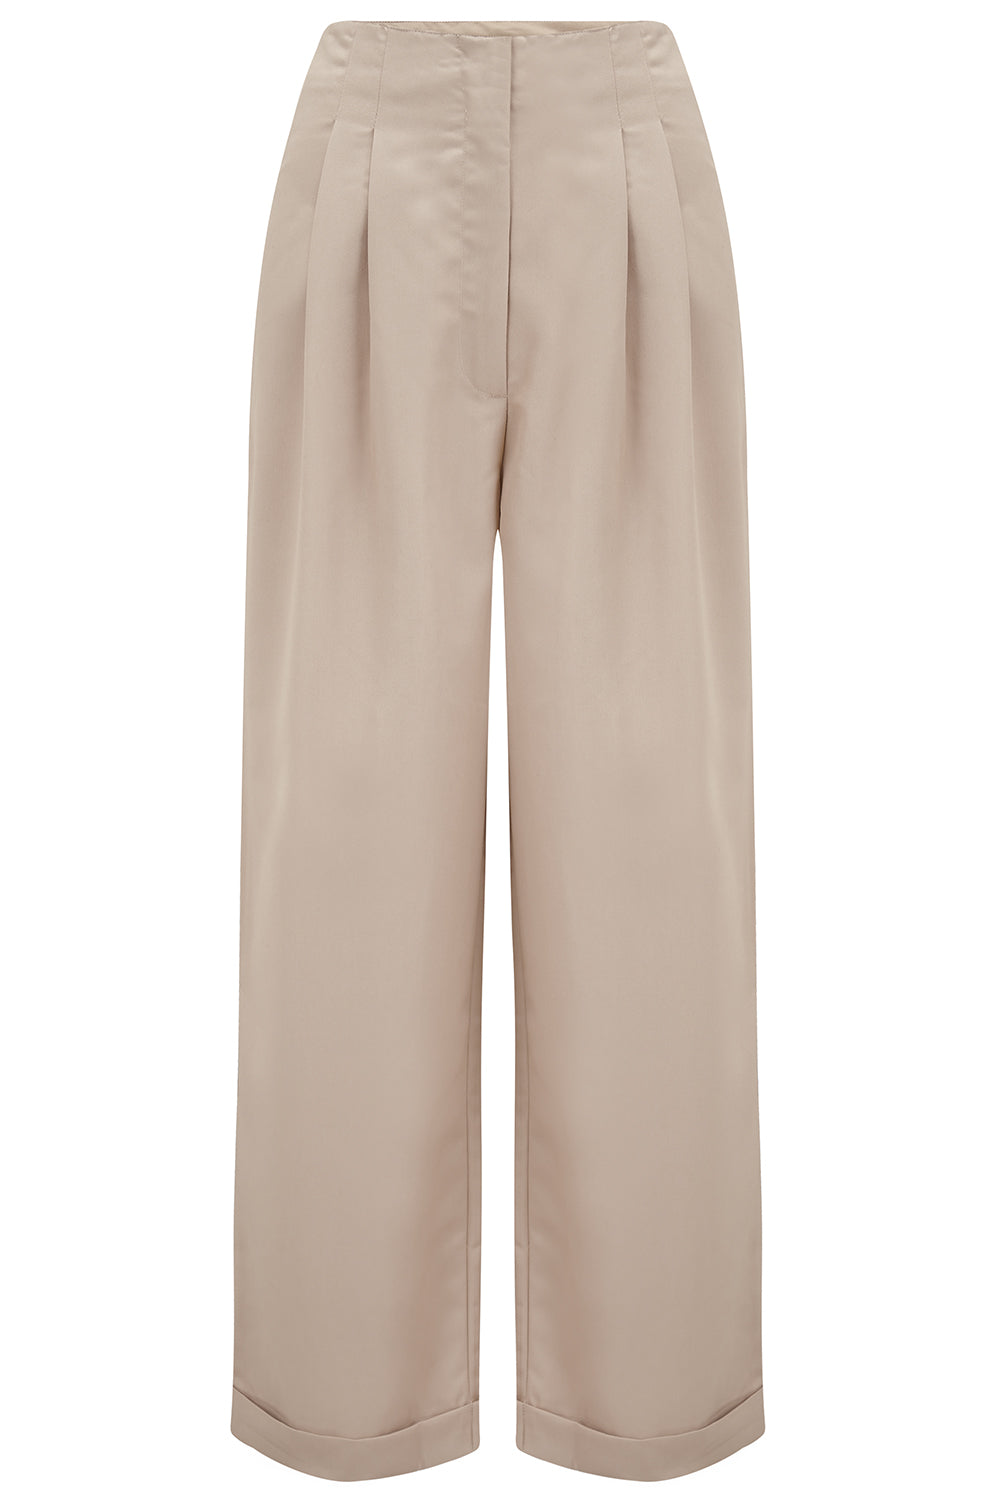 1940s Swing Pants & Sailor Trousers- Wide Leg, High Waist Audrey Tailored Trousers  in Stone  Perfectly Authentic 1940s Vintage Inspired Style £60.00 AT vintagedancer.com